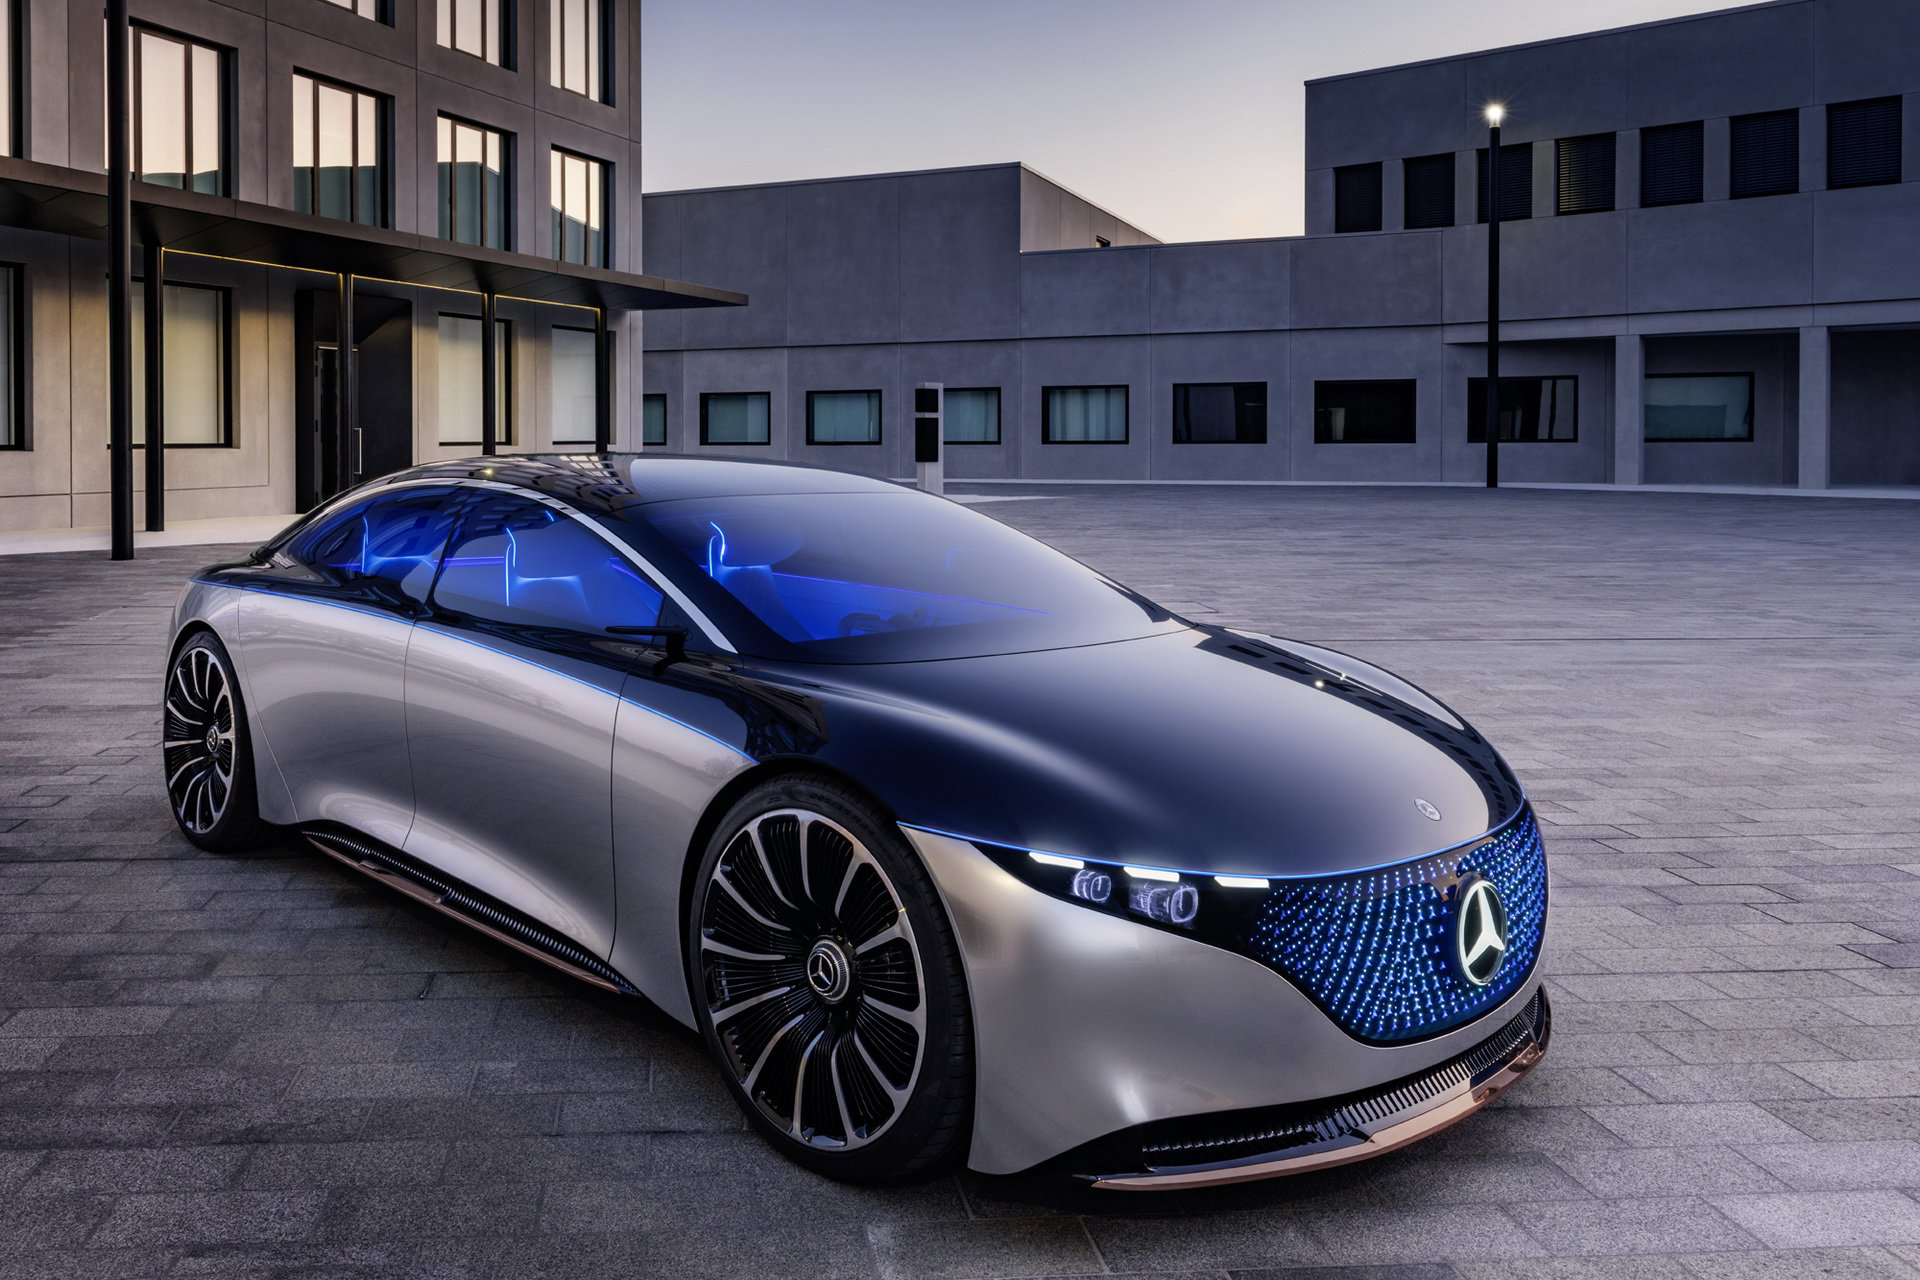 Mercedes Eqs Is Here To Show Tesla What Electric Luxury Sedans Should Be Like Carmojo The Mercedes Benz Vision Eqs Concept Features A Simple Yet Elegant D